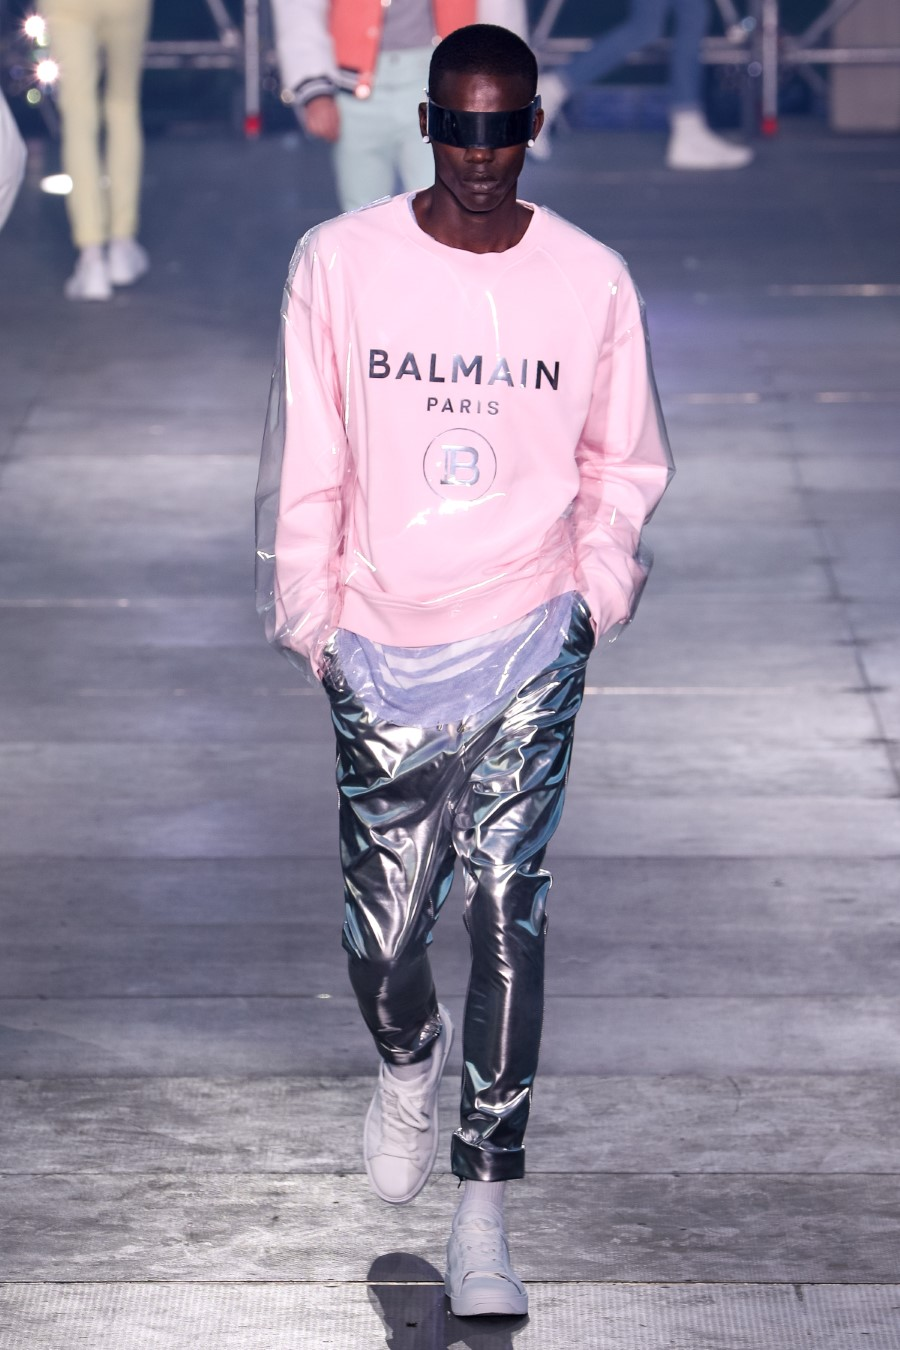 Balmain - Printemps-Été 2020 - Paris Fashion Week